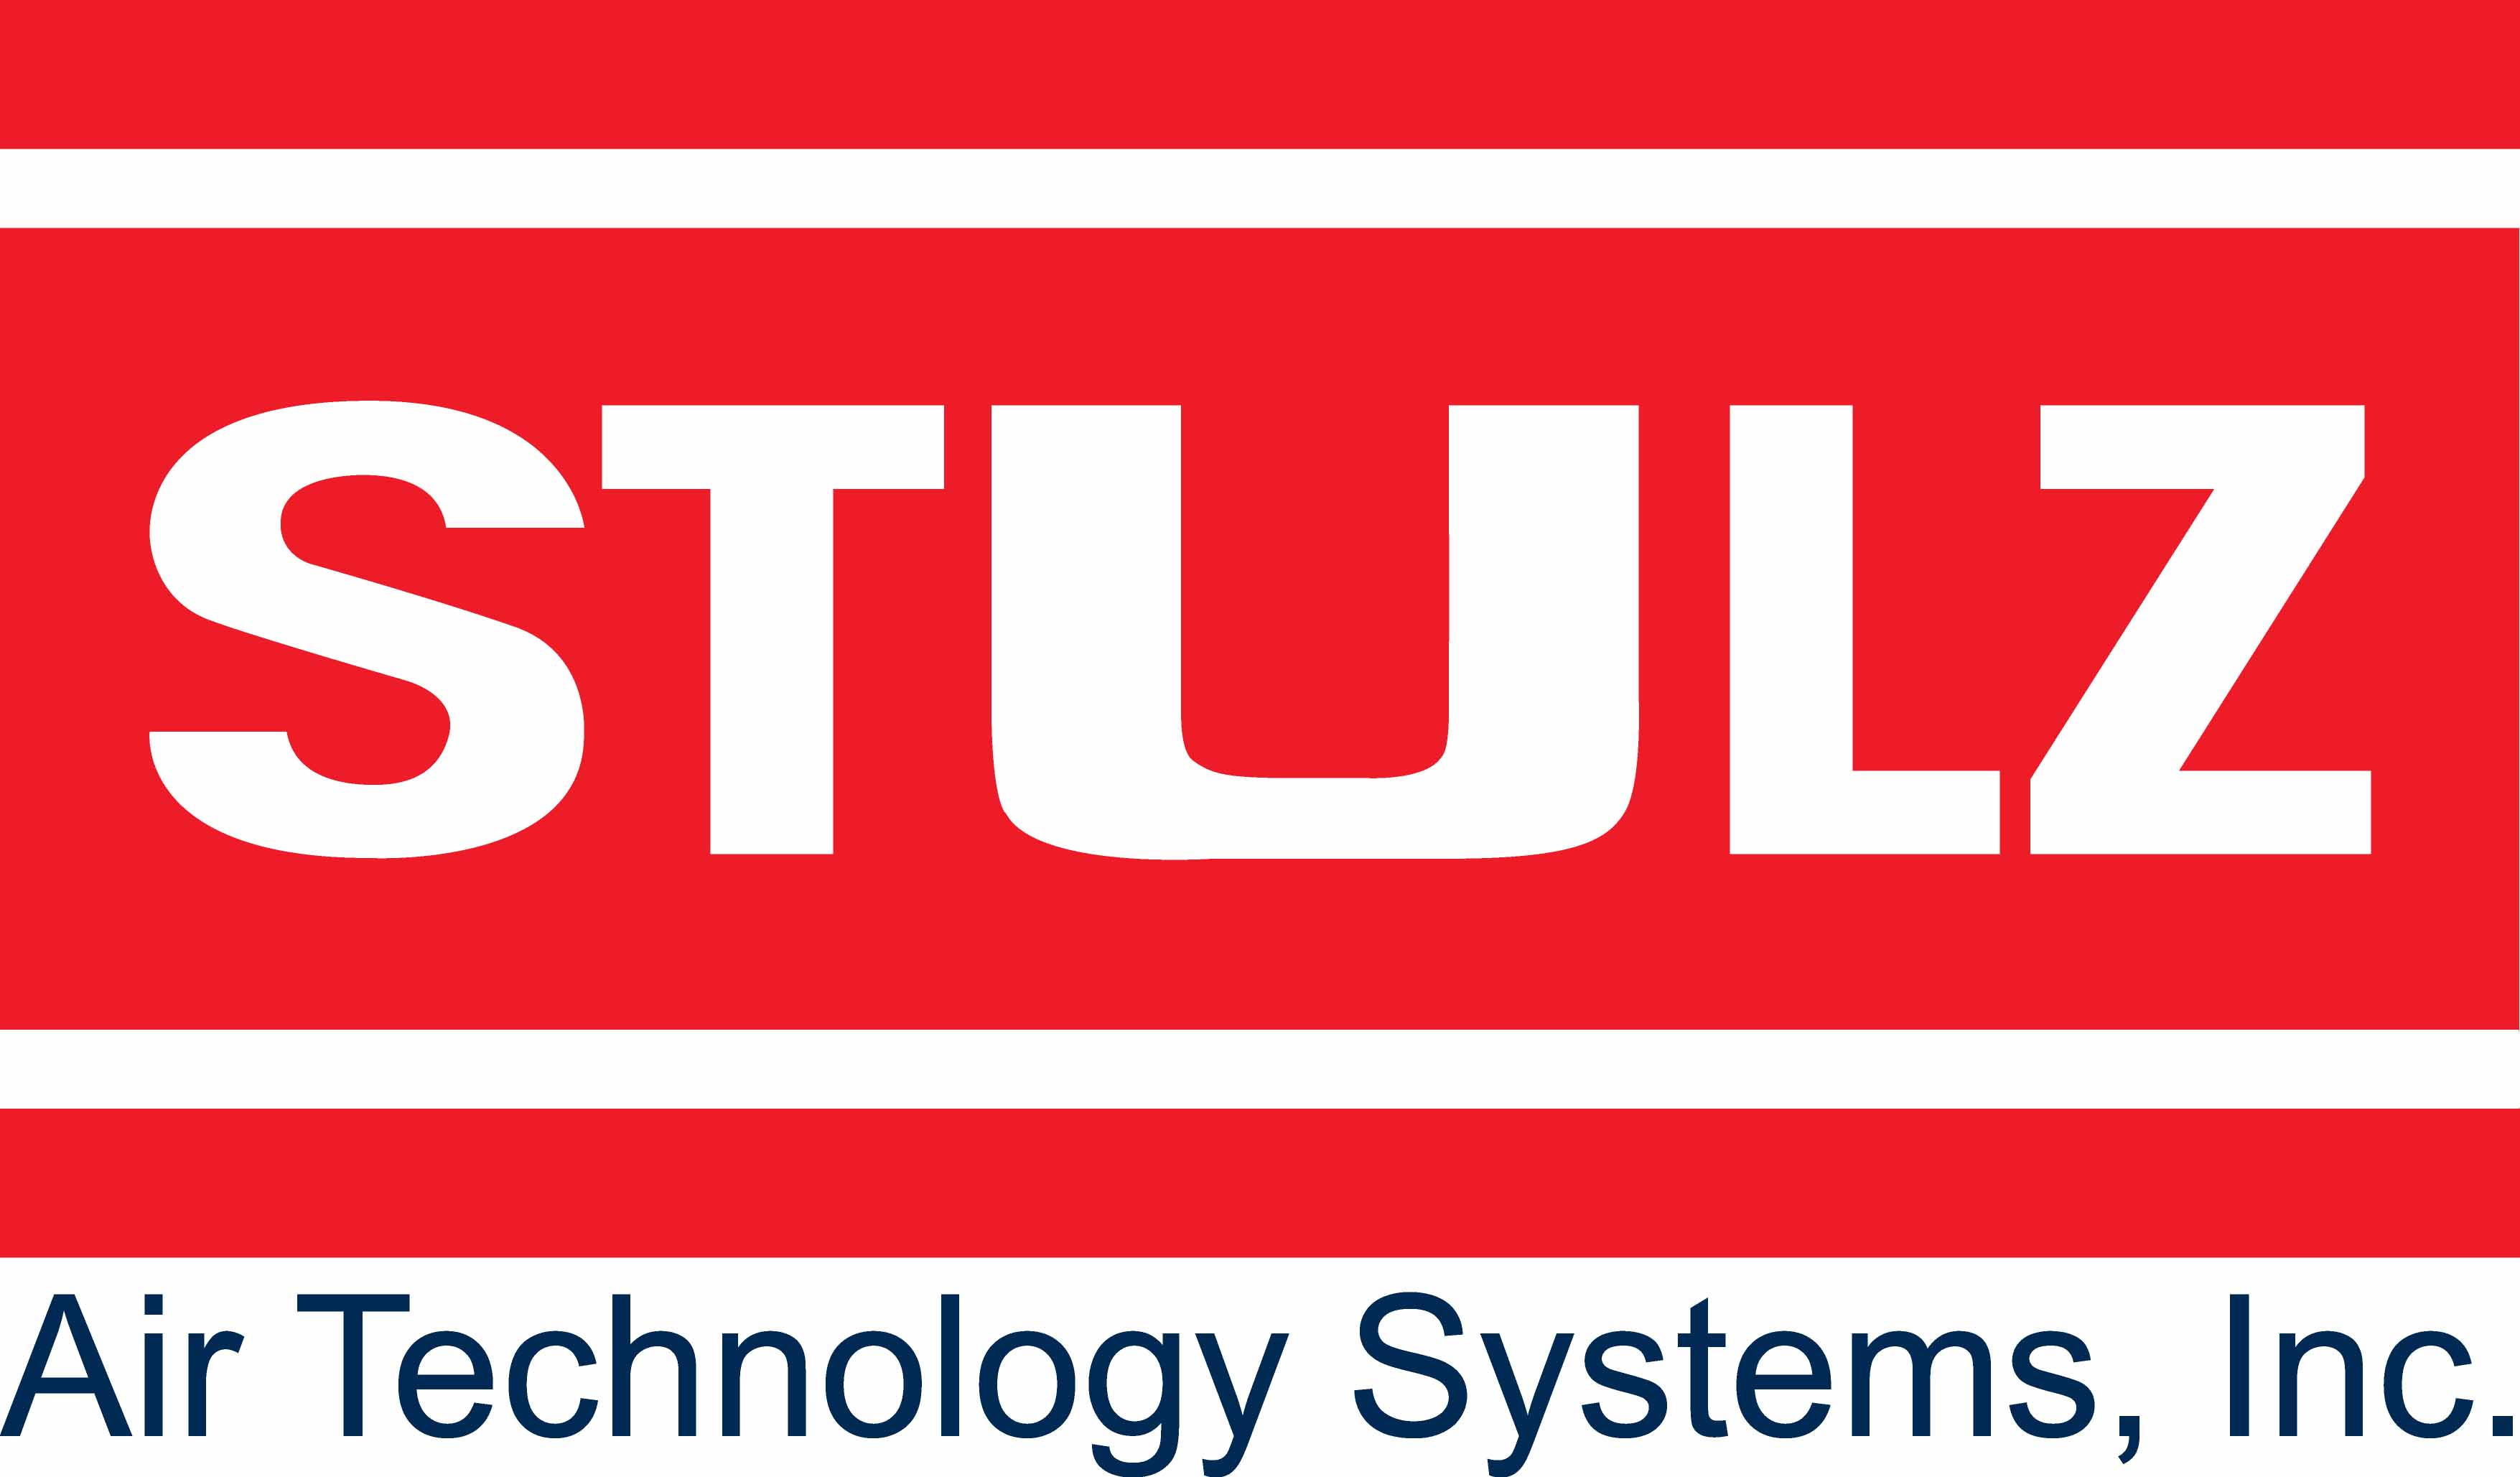 troubleshooting microprocessor controllers seminar in md rses org sponsor